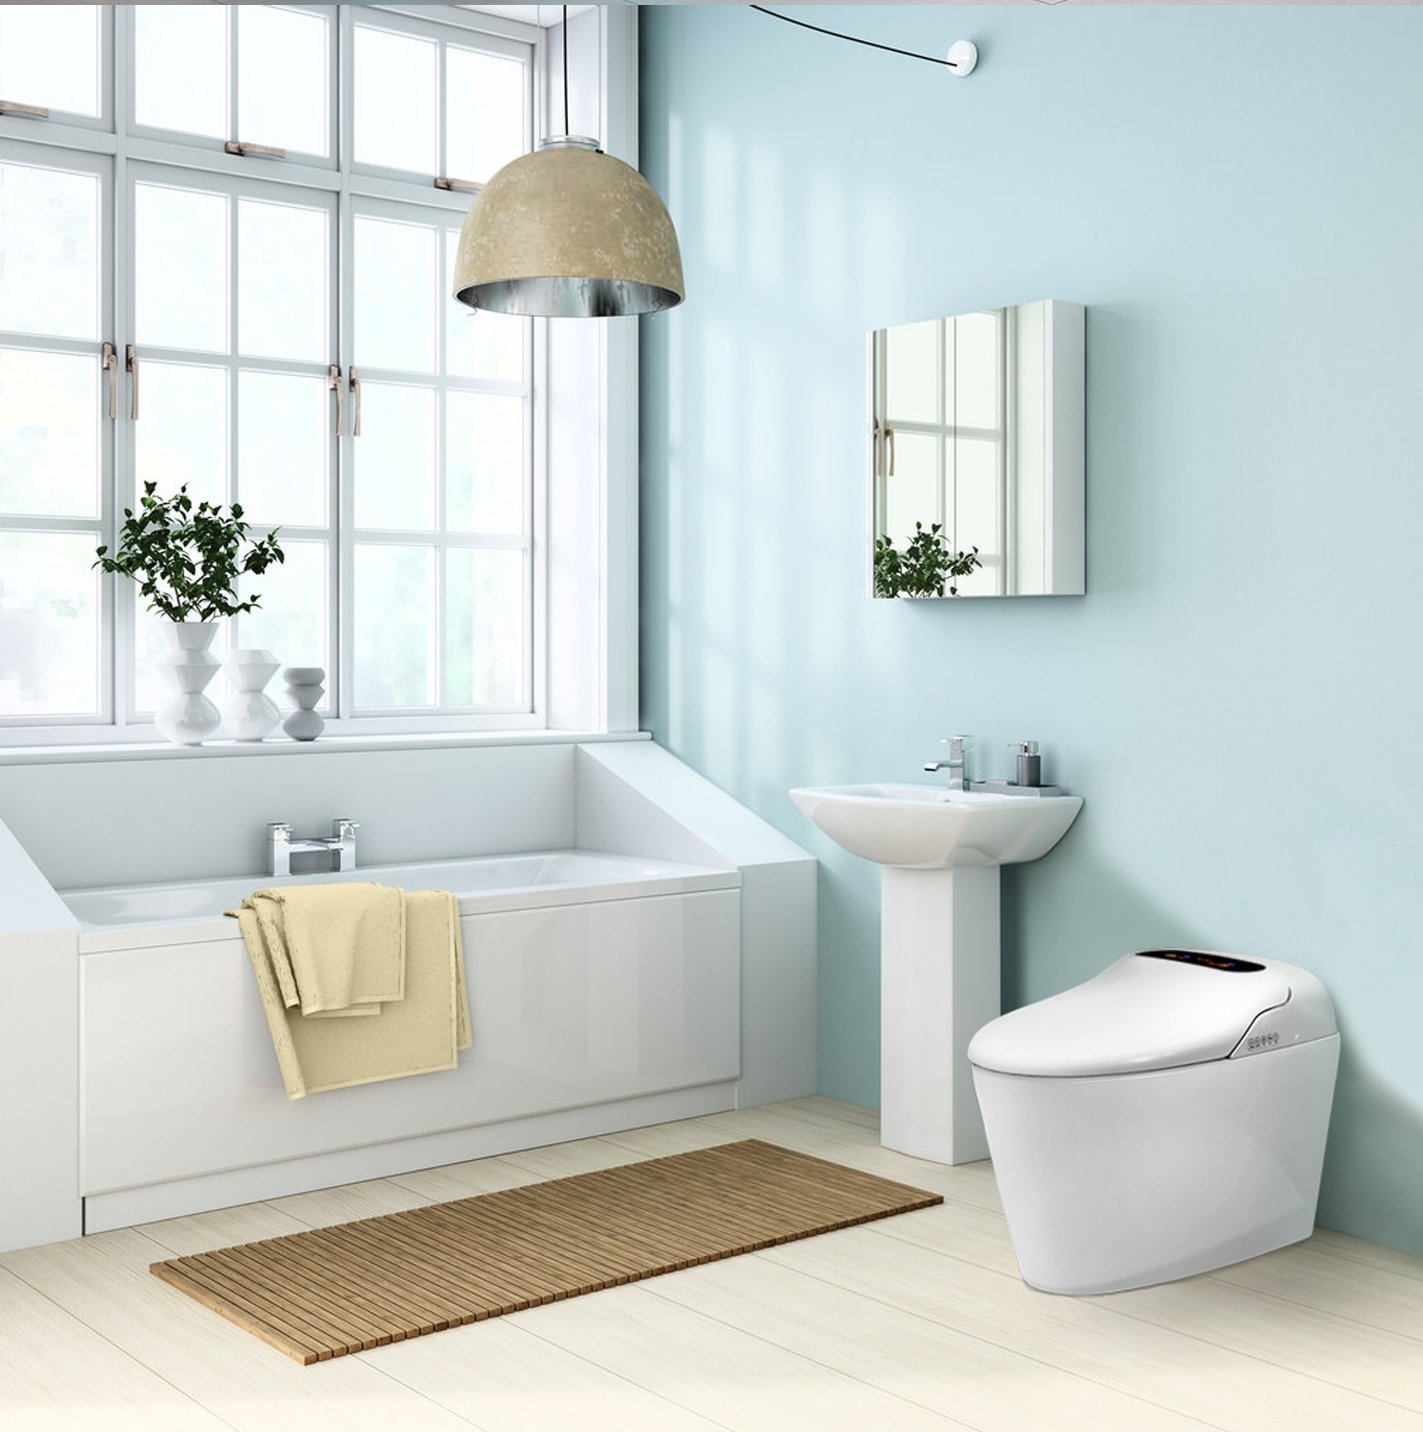 Euroto Luxury Smart Toilet One Piece Toilet with Soft Closing Heated Seat European Design Elongated for Bathroom Toilet Bowls, Toilets, and Toilet Seats by EUROTO (Image #8)